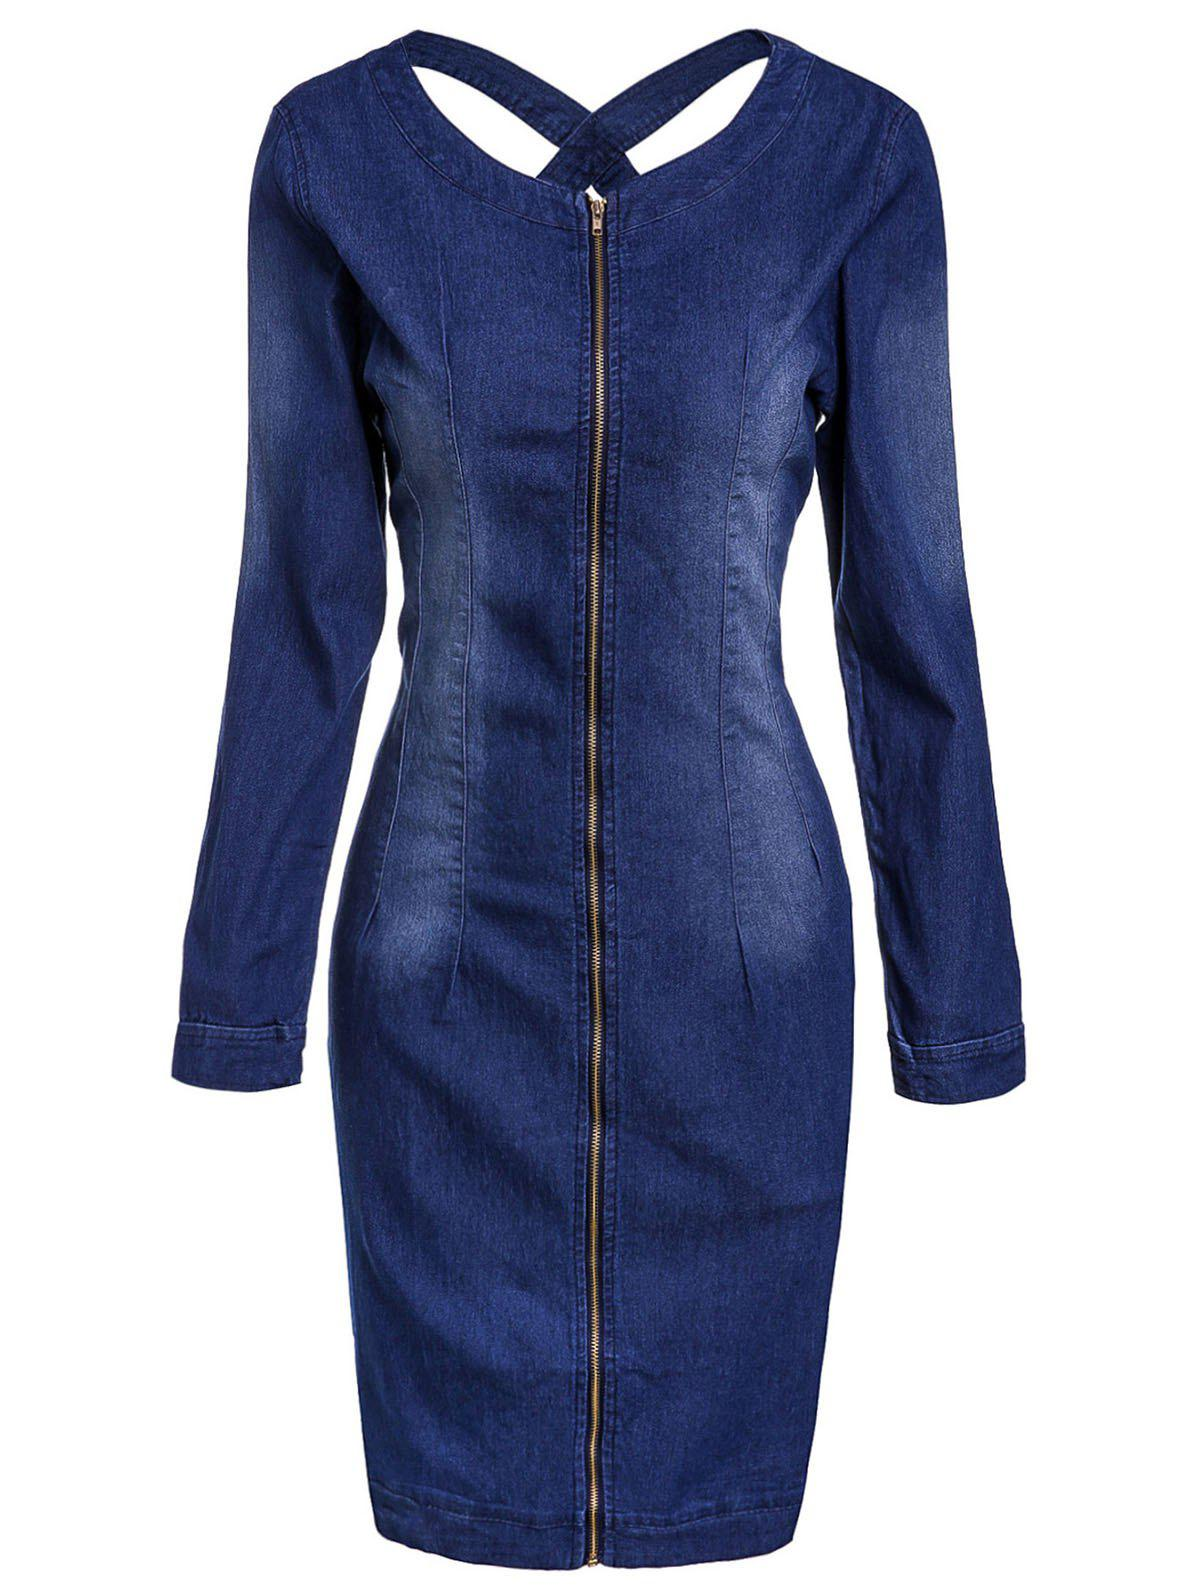 Casual Scoop Neck Long Sleeve Zip Up Slimming Women's Denim Dress - BLUE M